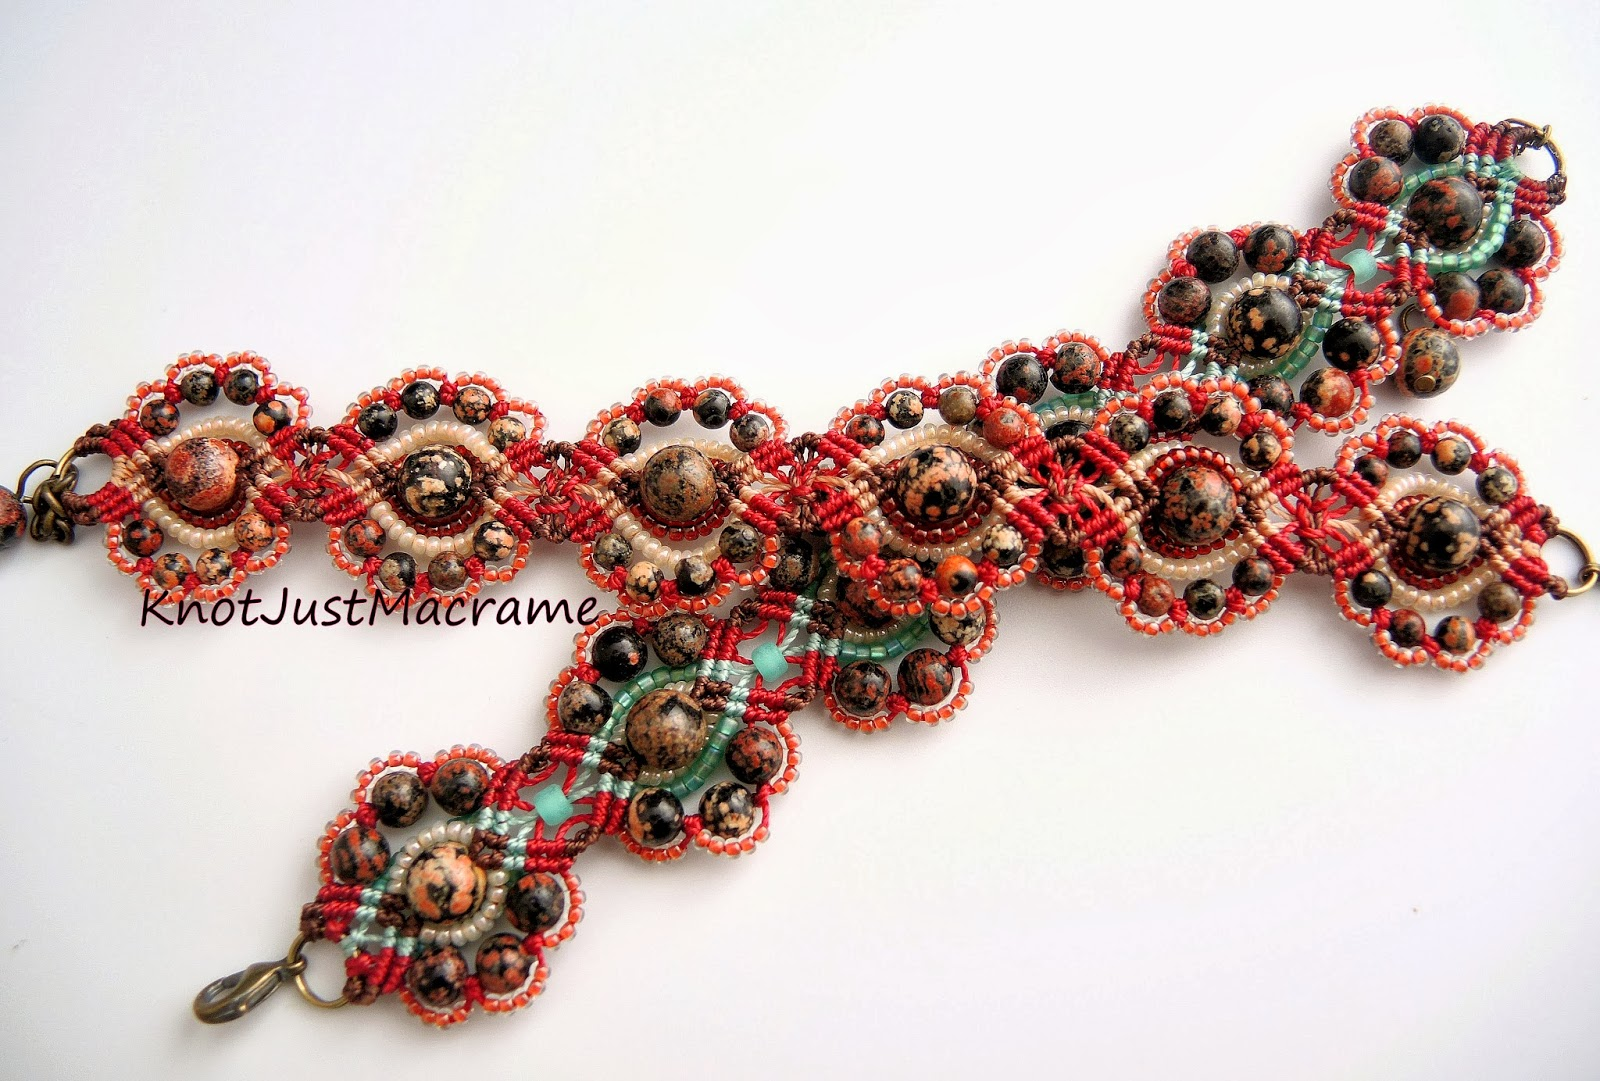 Two micro macrame bracelets featuring Mexican red snowflake jasper, knotted by Sherri Stokey